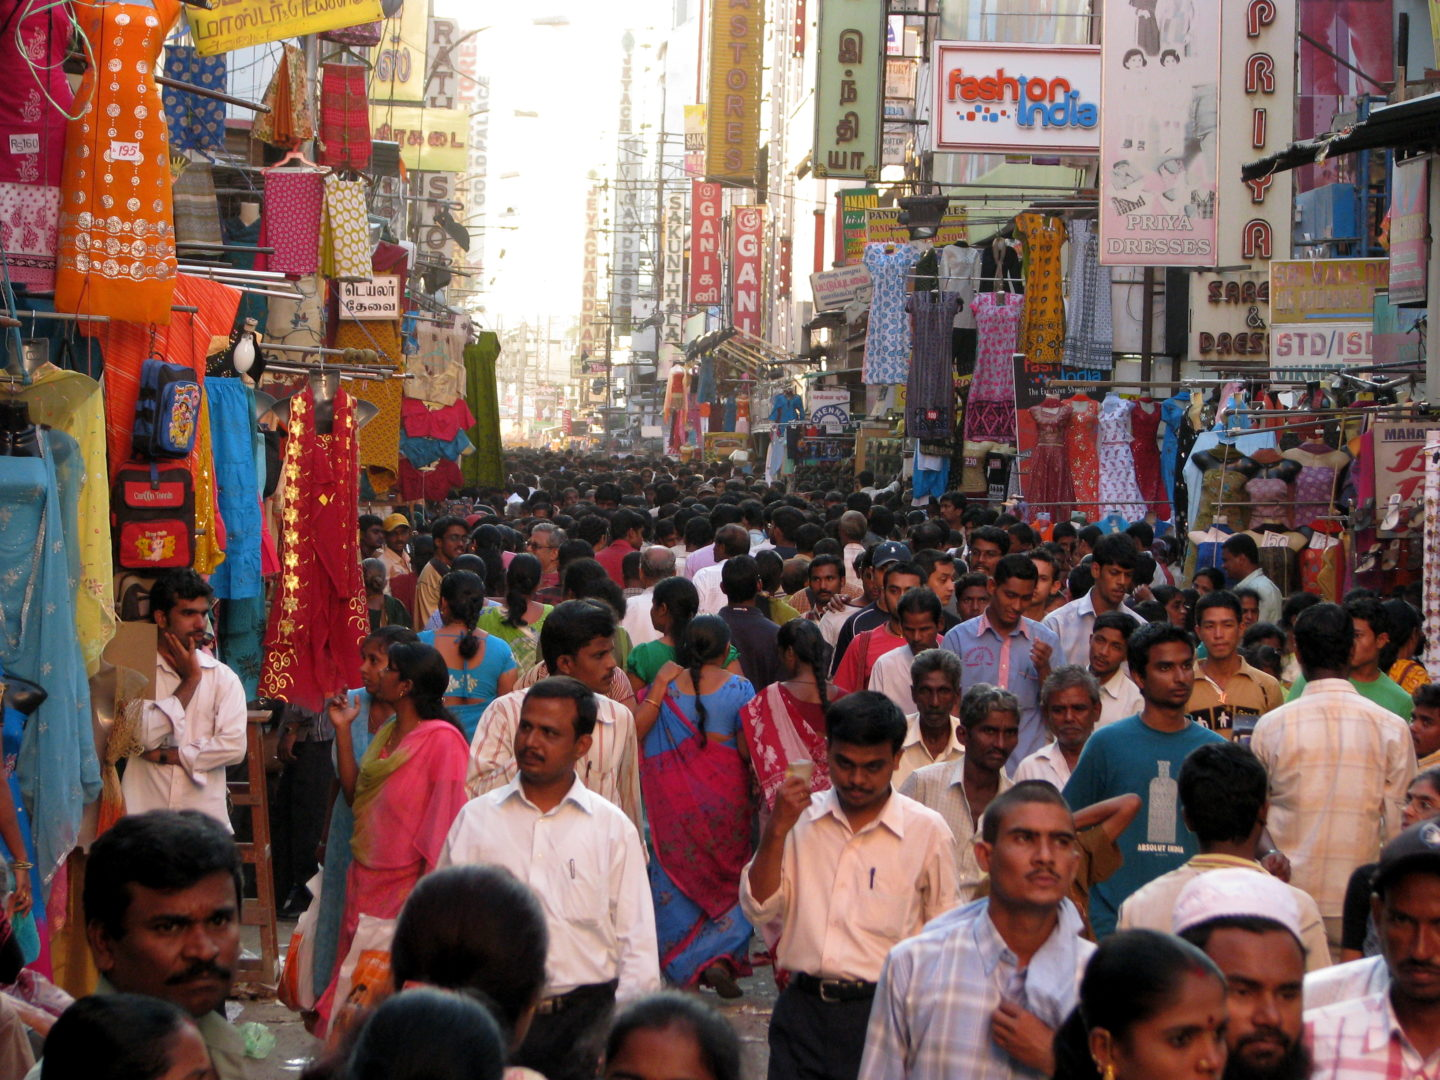 The T. Nagar market area in India FLICKR PHOTO